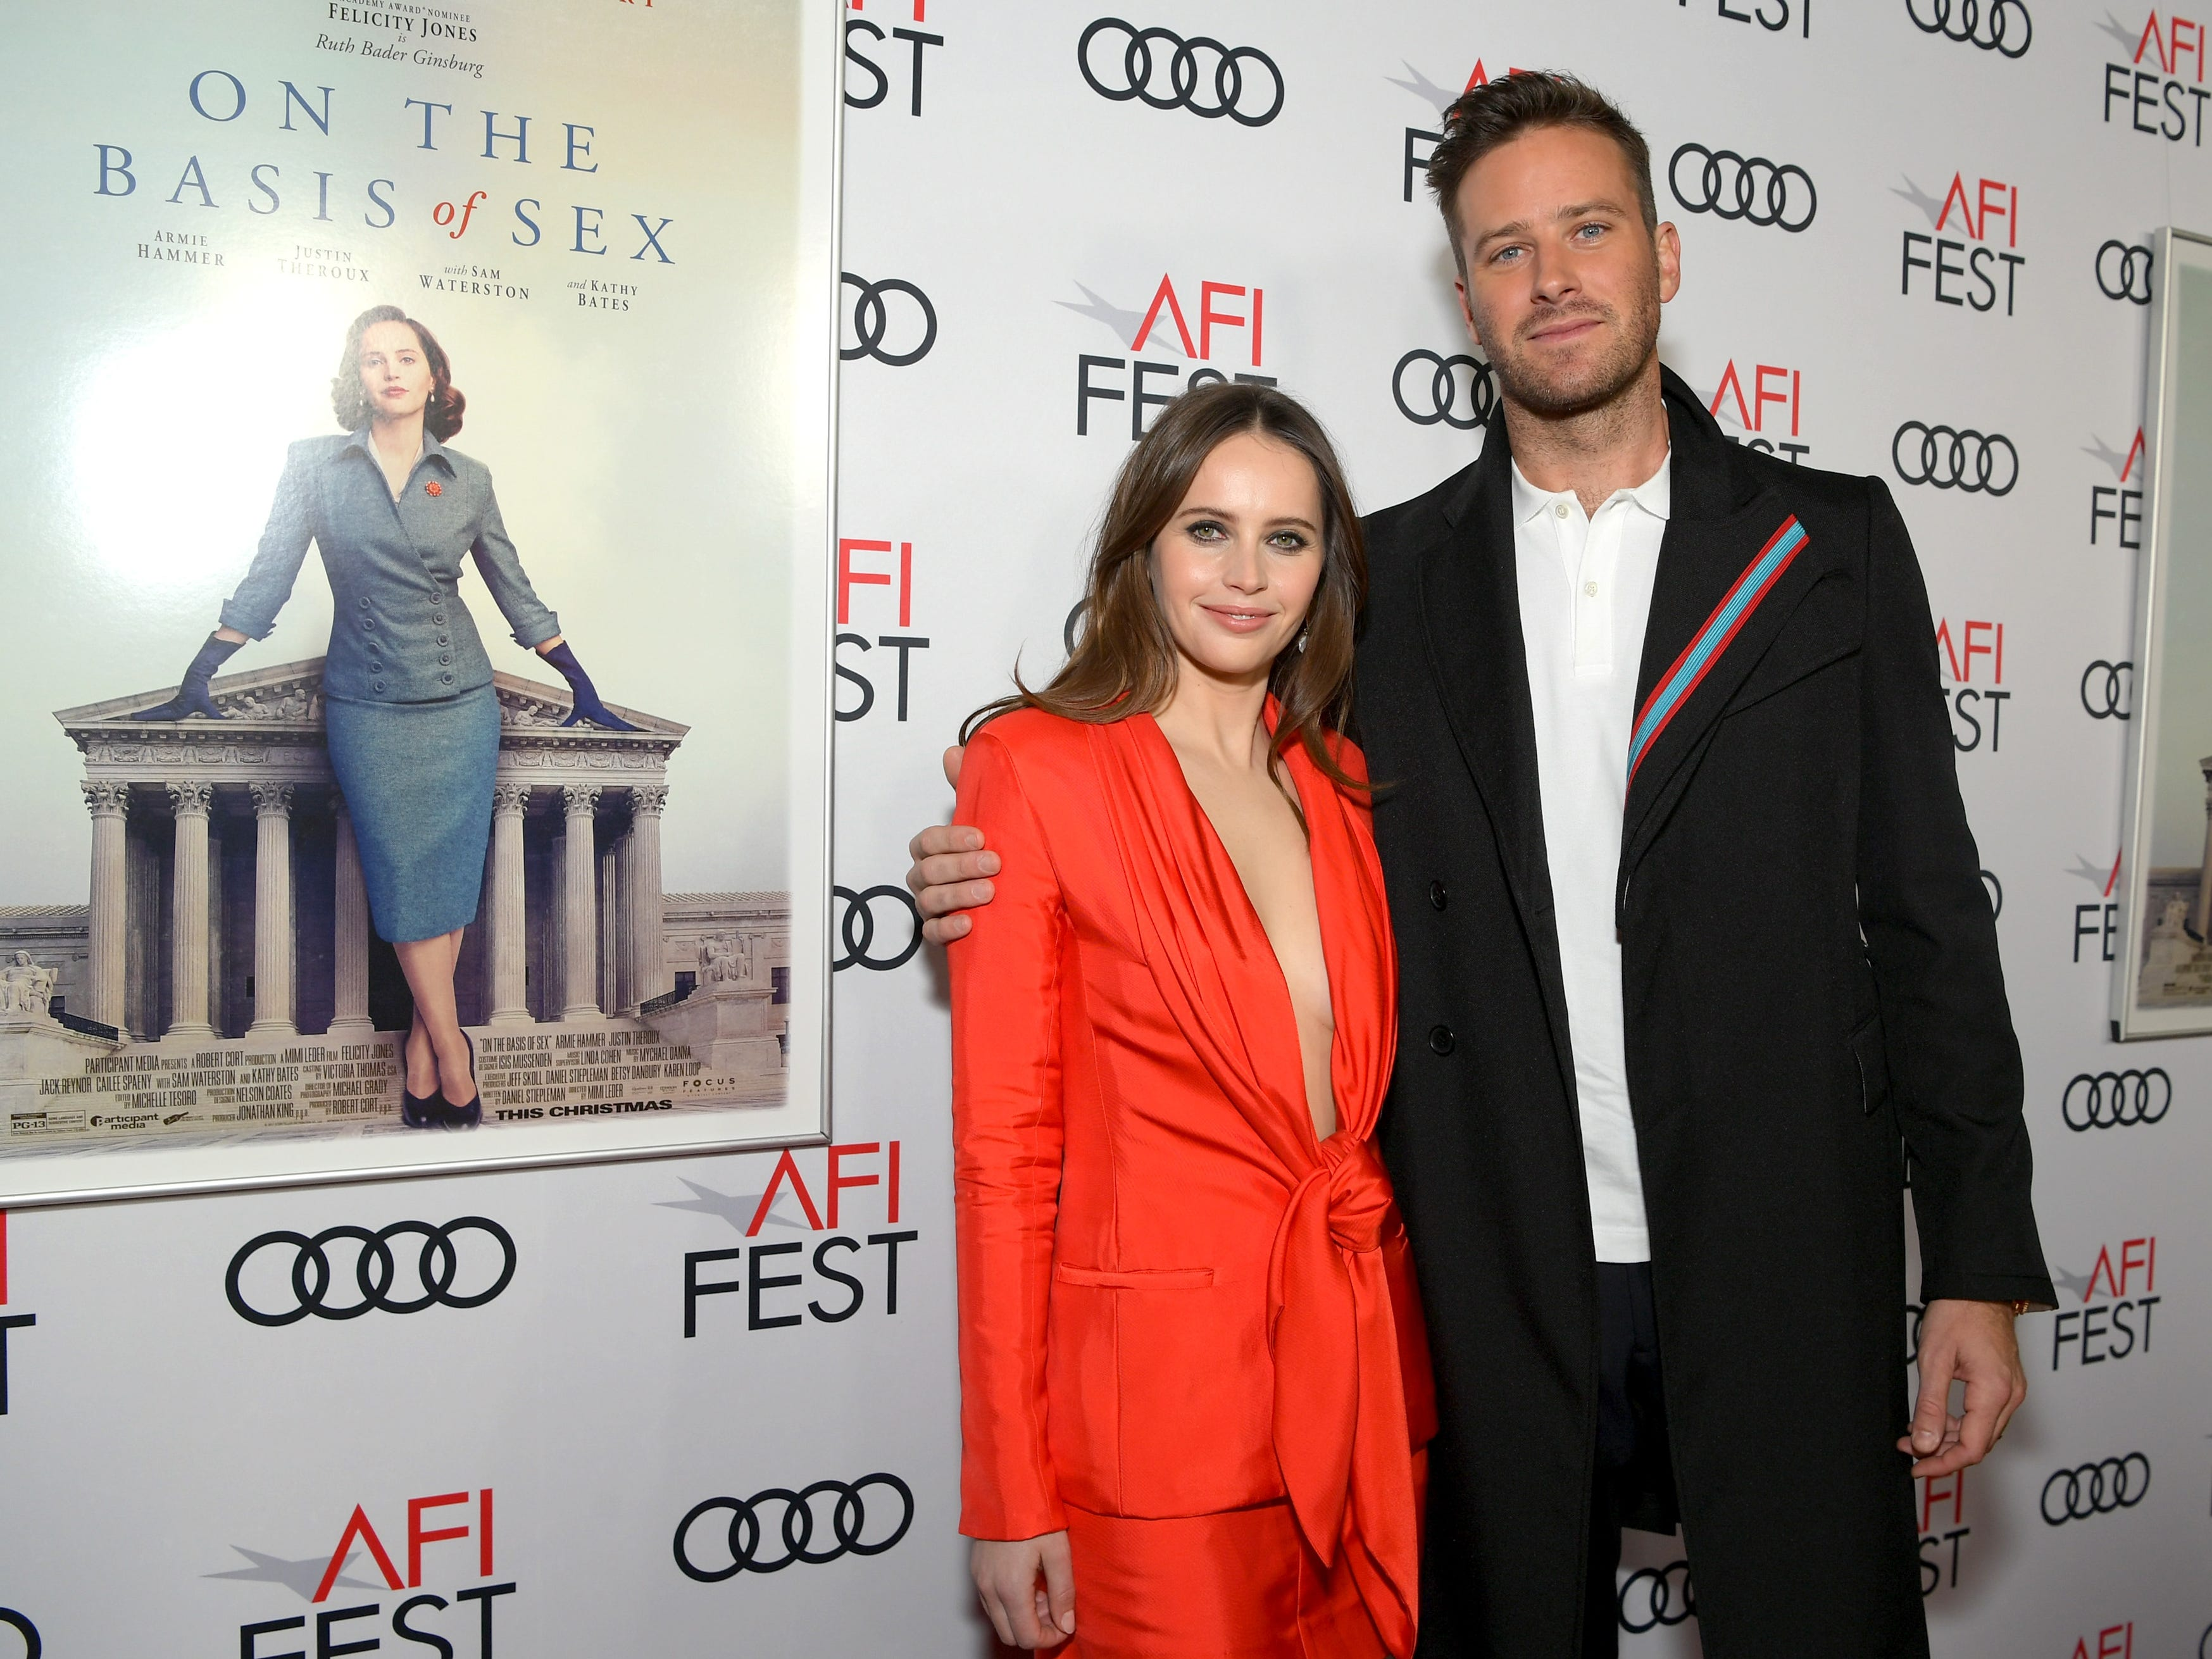 "HOLLYWOOD, CA - NOVEMBER 08:  Felicity Jones (L) and Armie Hammer attend the Opening Night World Premiere Gala Screening of ""On The Basis Of Sex"" at AFI FEST 2018 Presented By Audi at TCL Chinese Theatre on November 8, 2018 in Hollywood, California.  (Photo by Emma McIntyre/Getty Images for AFI) ORG XMIT: 775252123 ORIG FILE ID: 1059403922"